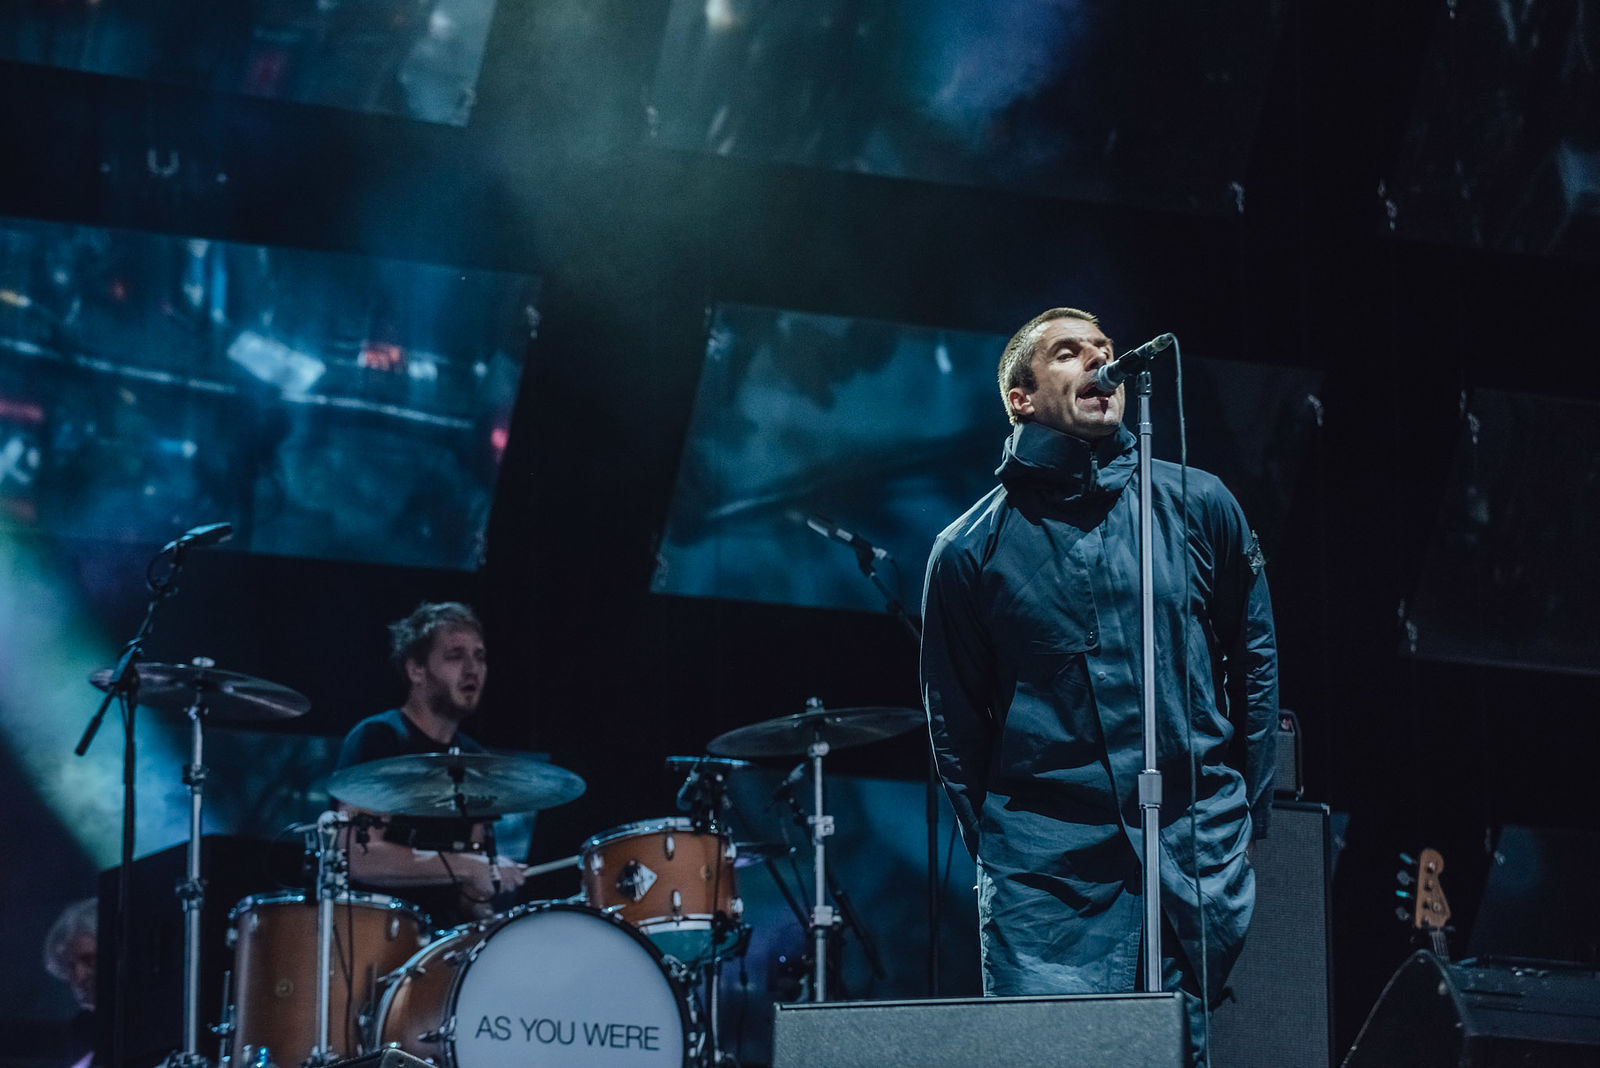 LIAM GALLAGHER PERFORMING AT LEEDS FESTIVAL 2017 - 25/08/2017  PICTURE BY: BEN BENTLEY